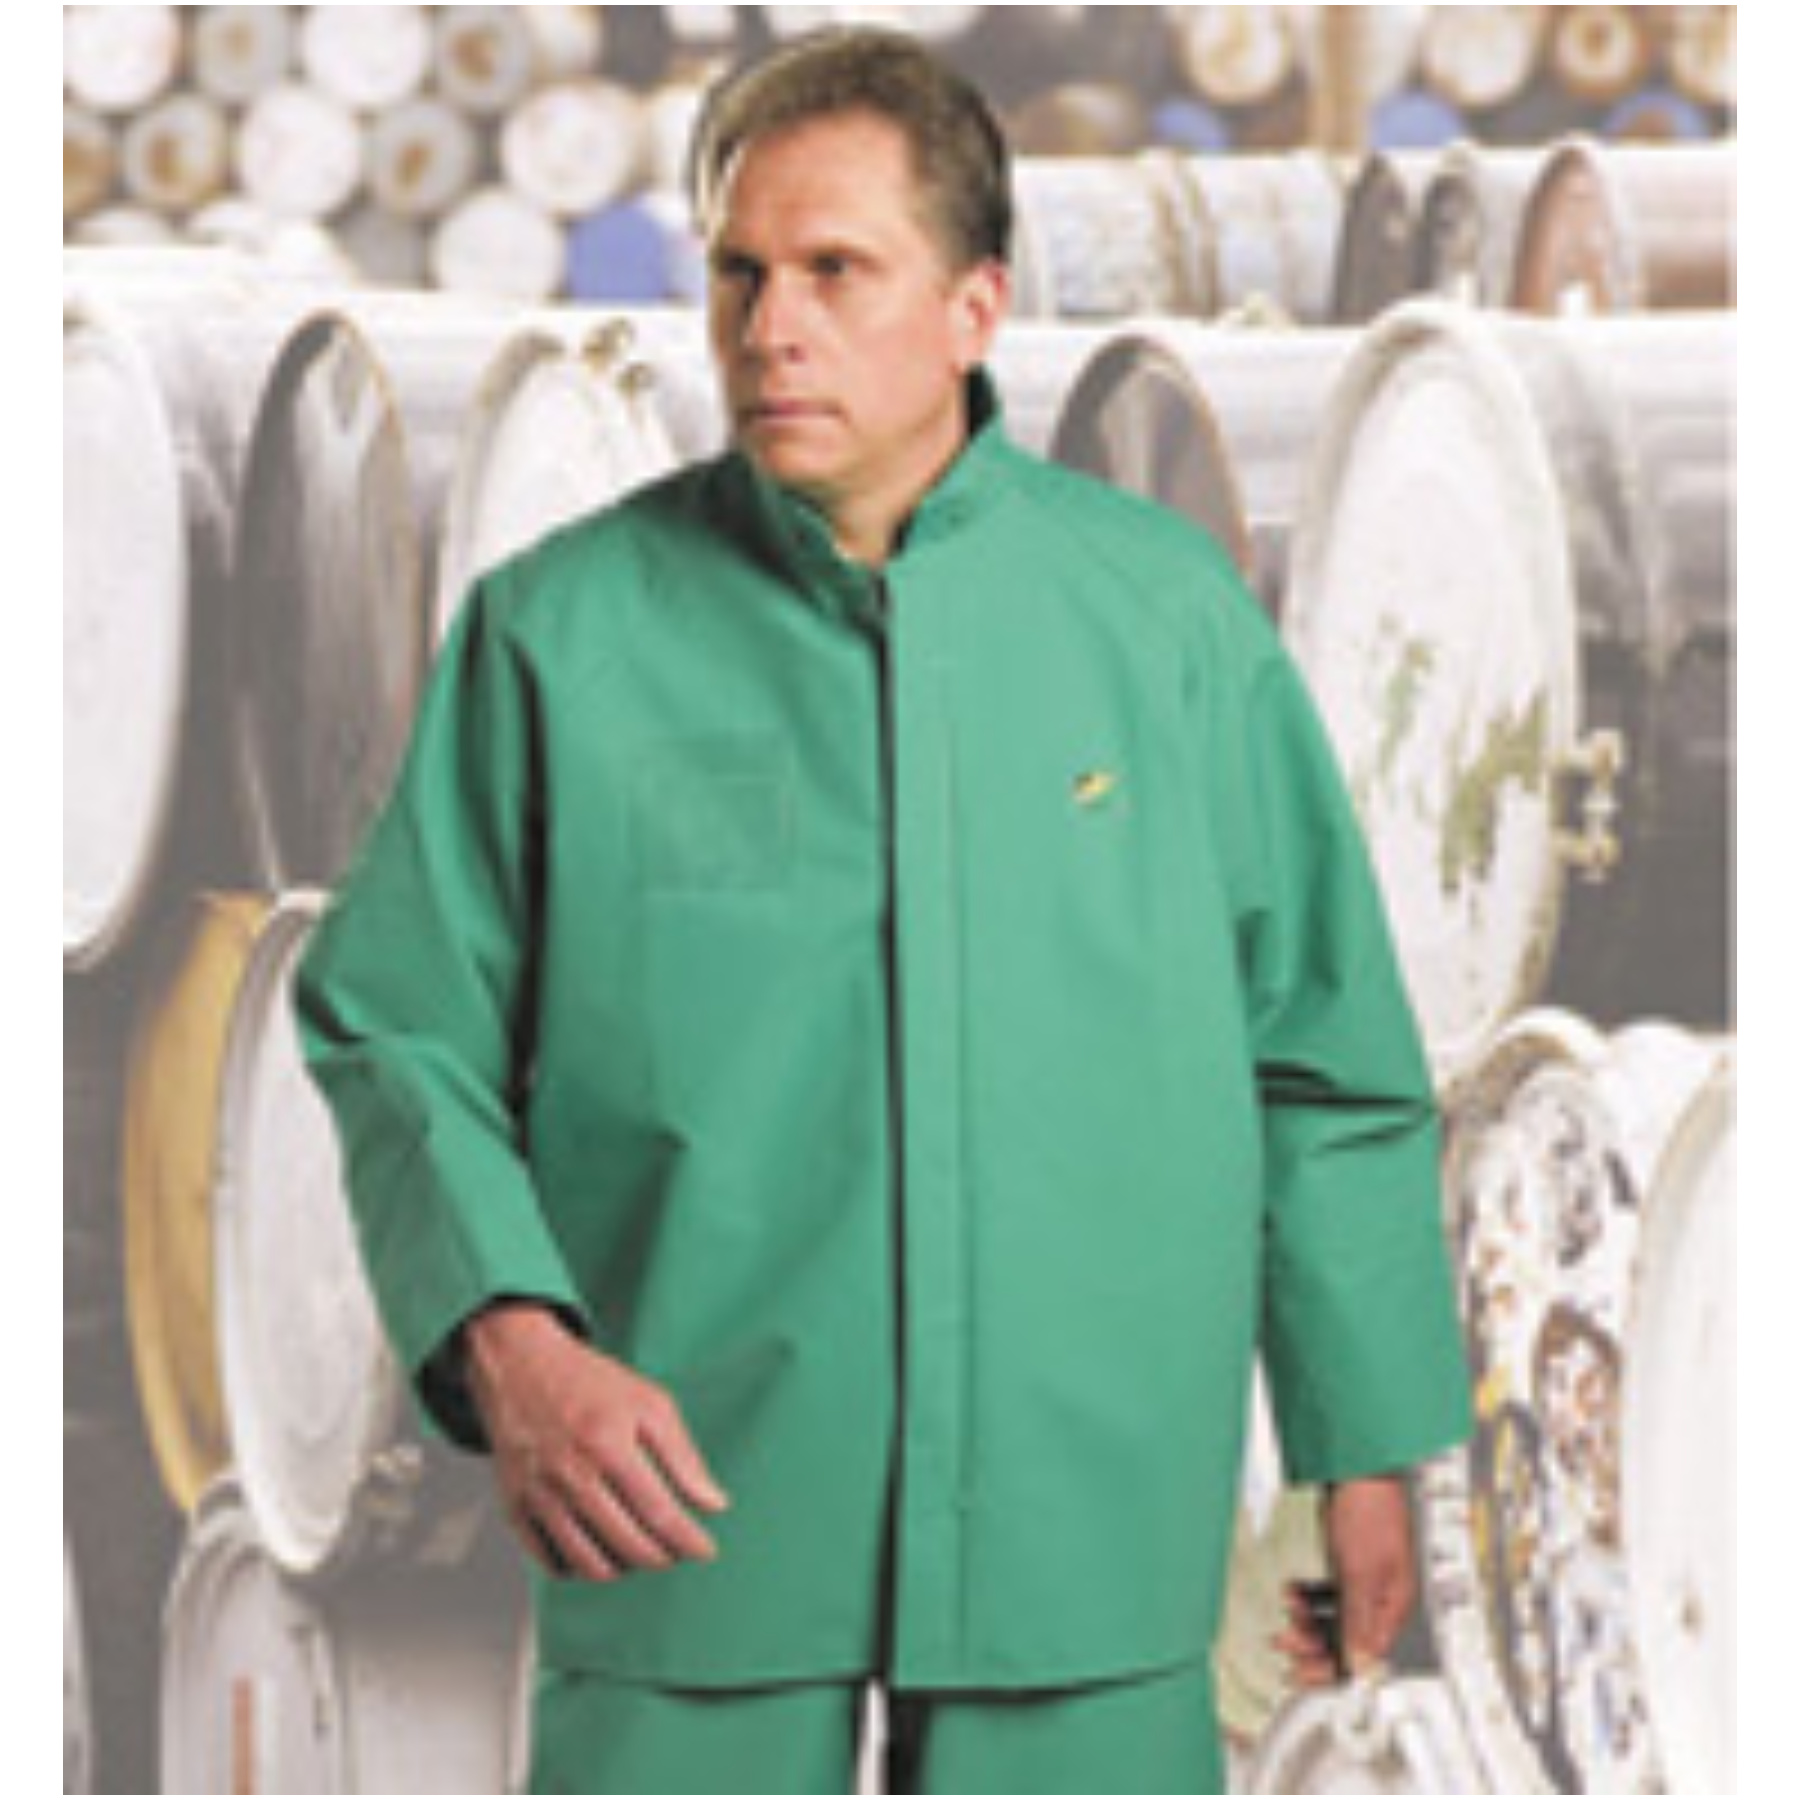 Bata/Onguard Extra Large Green Chemtex .35MM PVC On Nylon Polyester Jacket With Hood Snaps